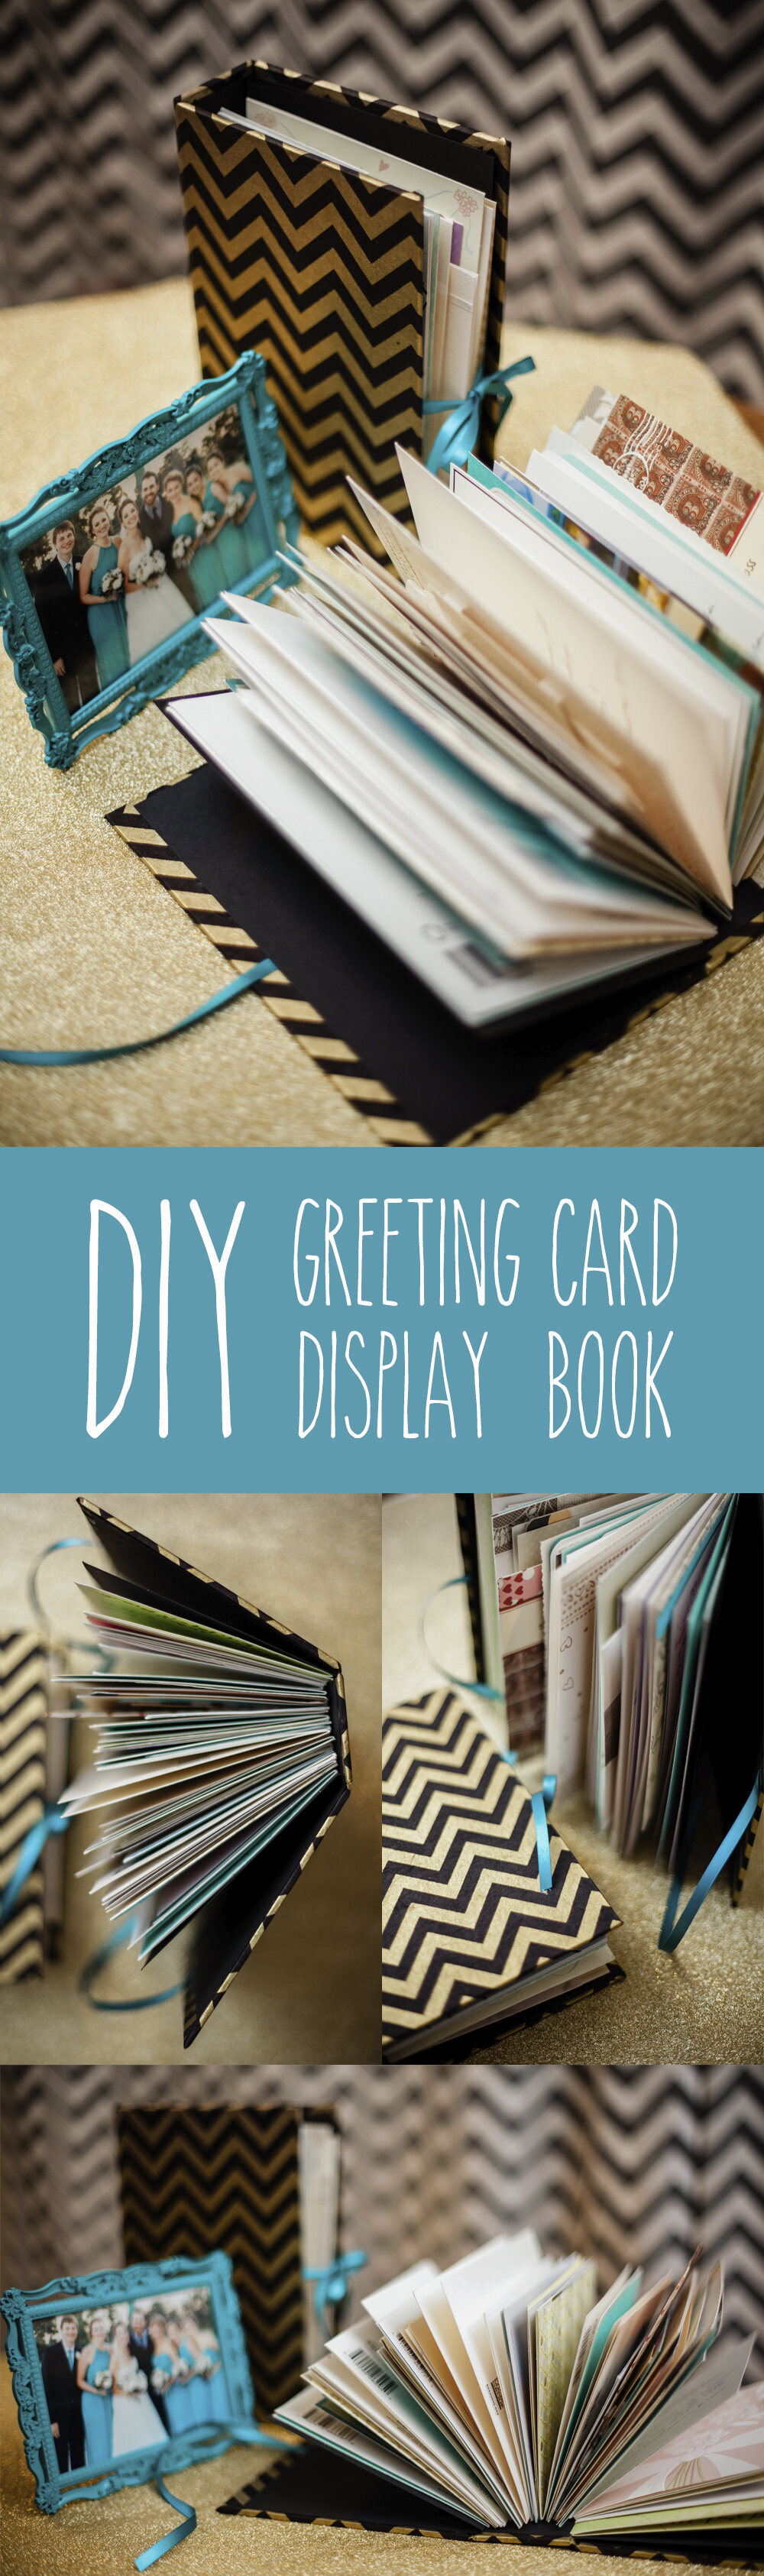 Turn Greeting Cards Into Book Austin Wedding Photographer Dreamy Elk Photography Design Llc